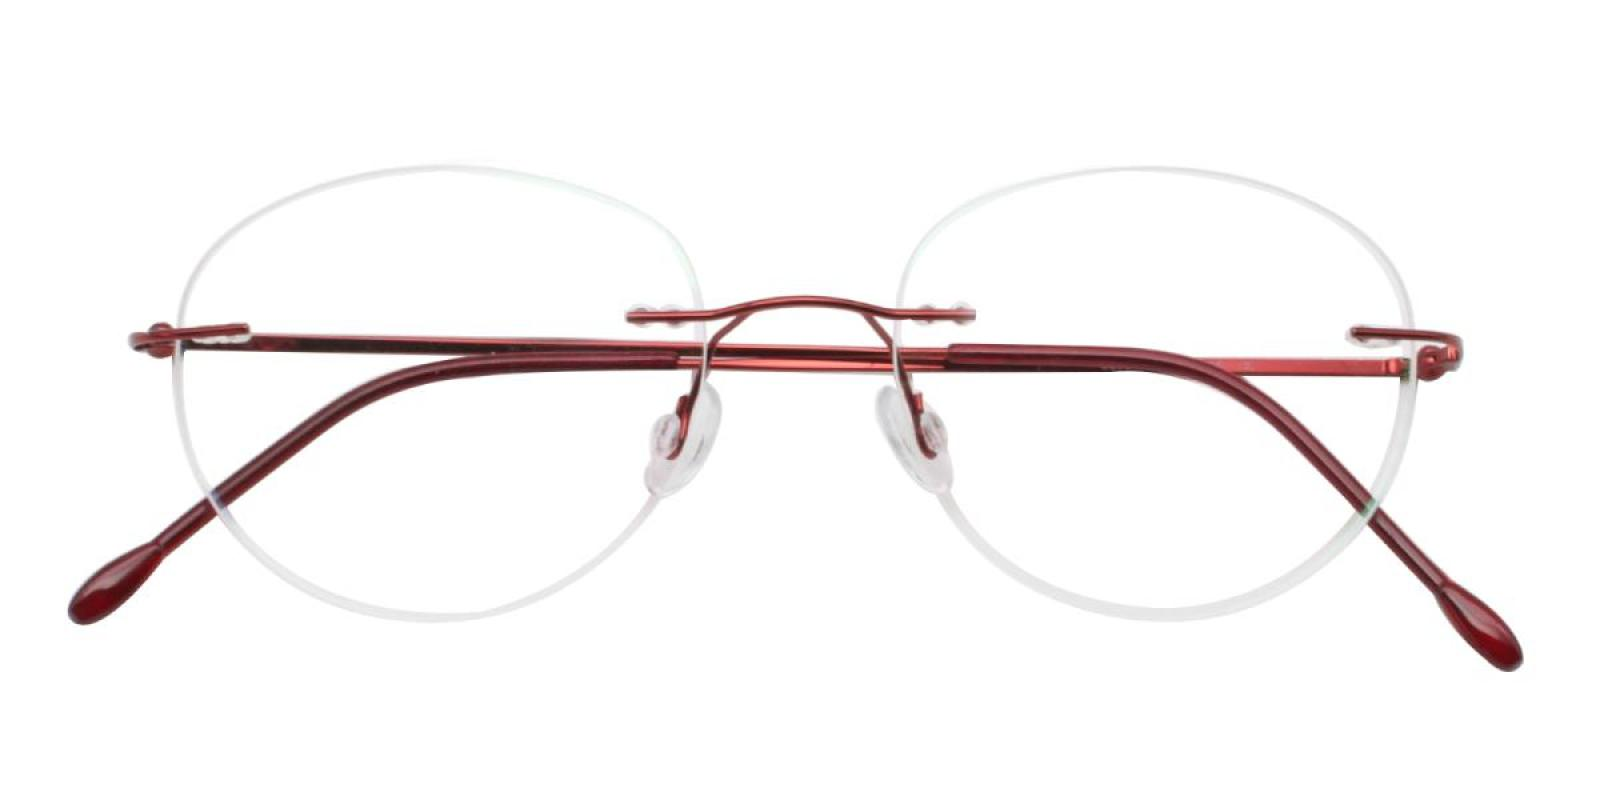 Ditto-Red-Varieties-Metal-Eyeglasses-detail